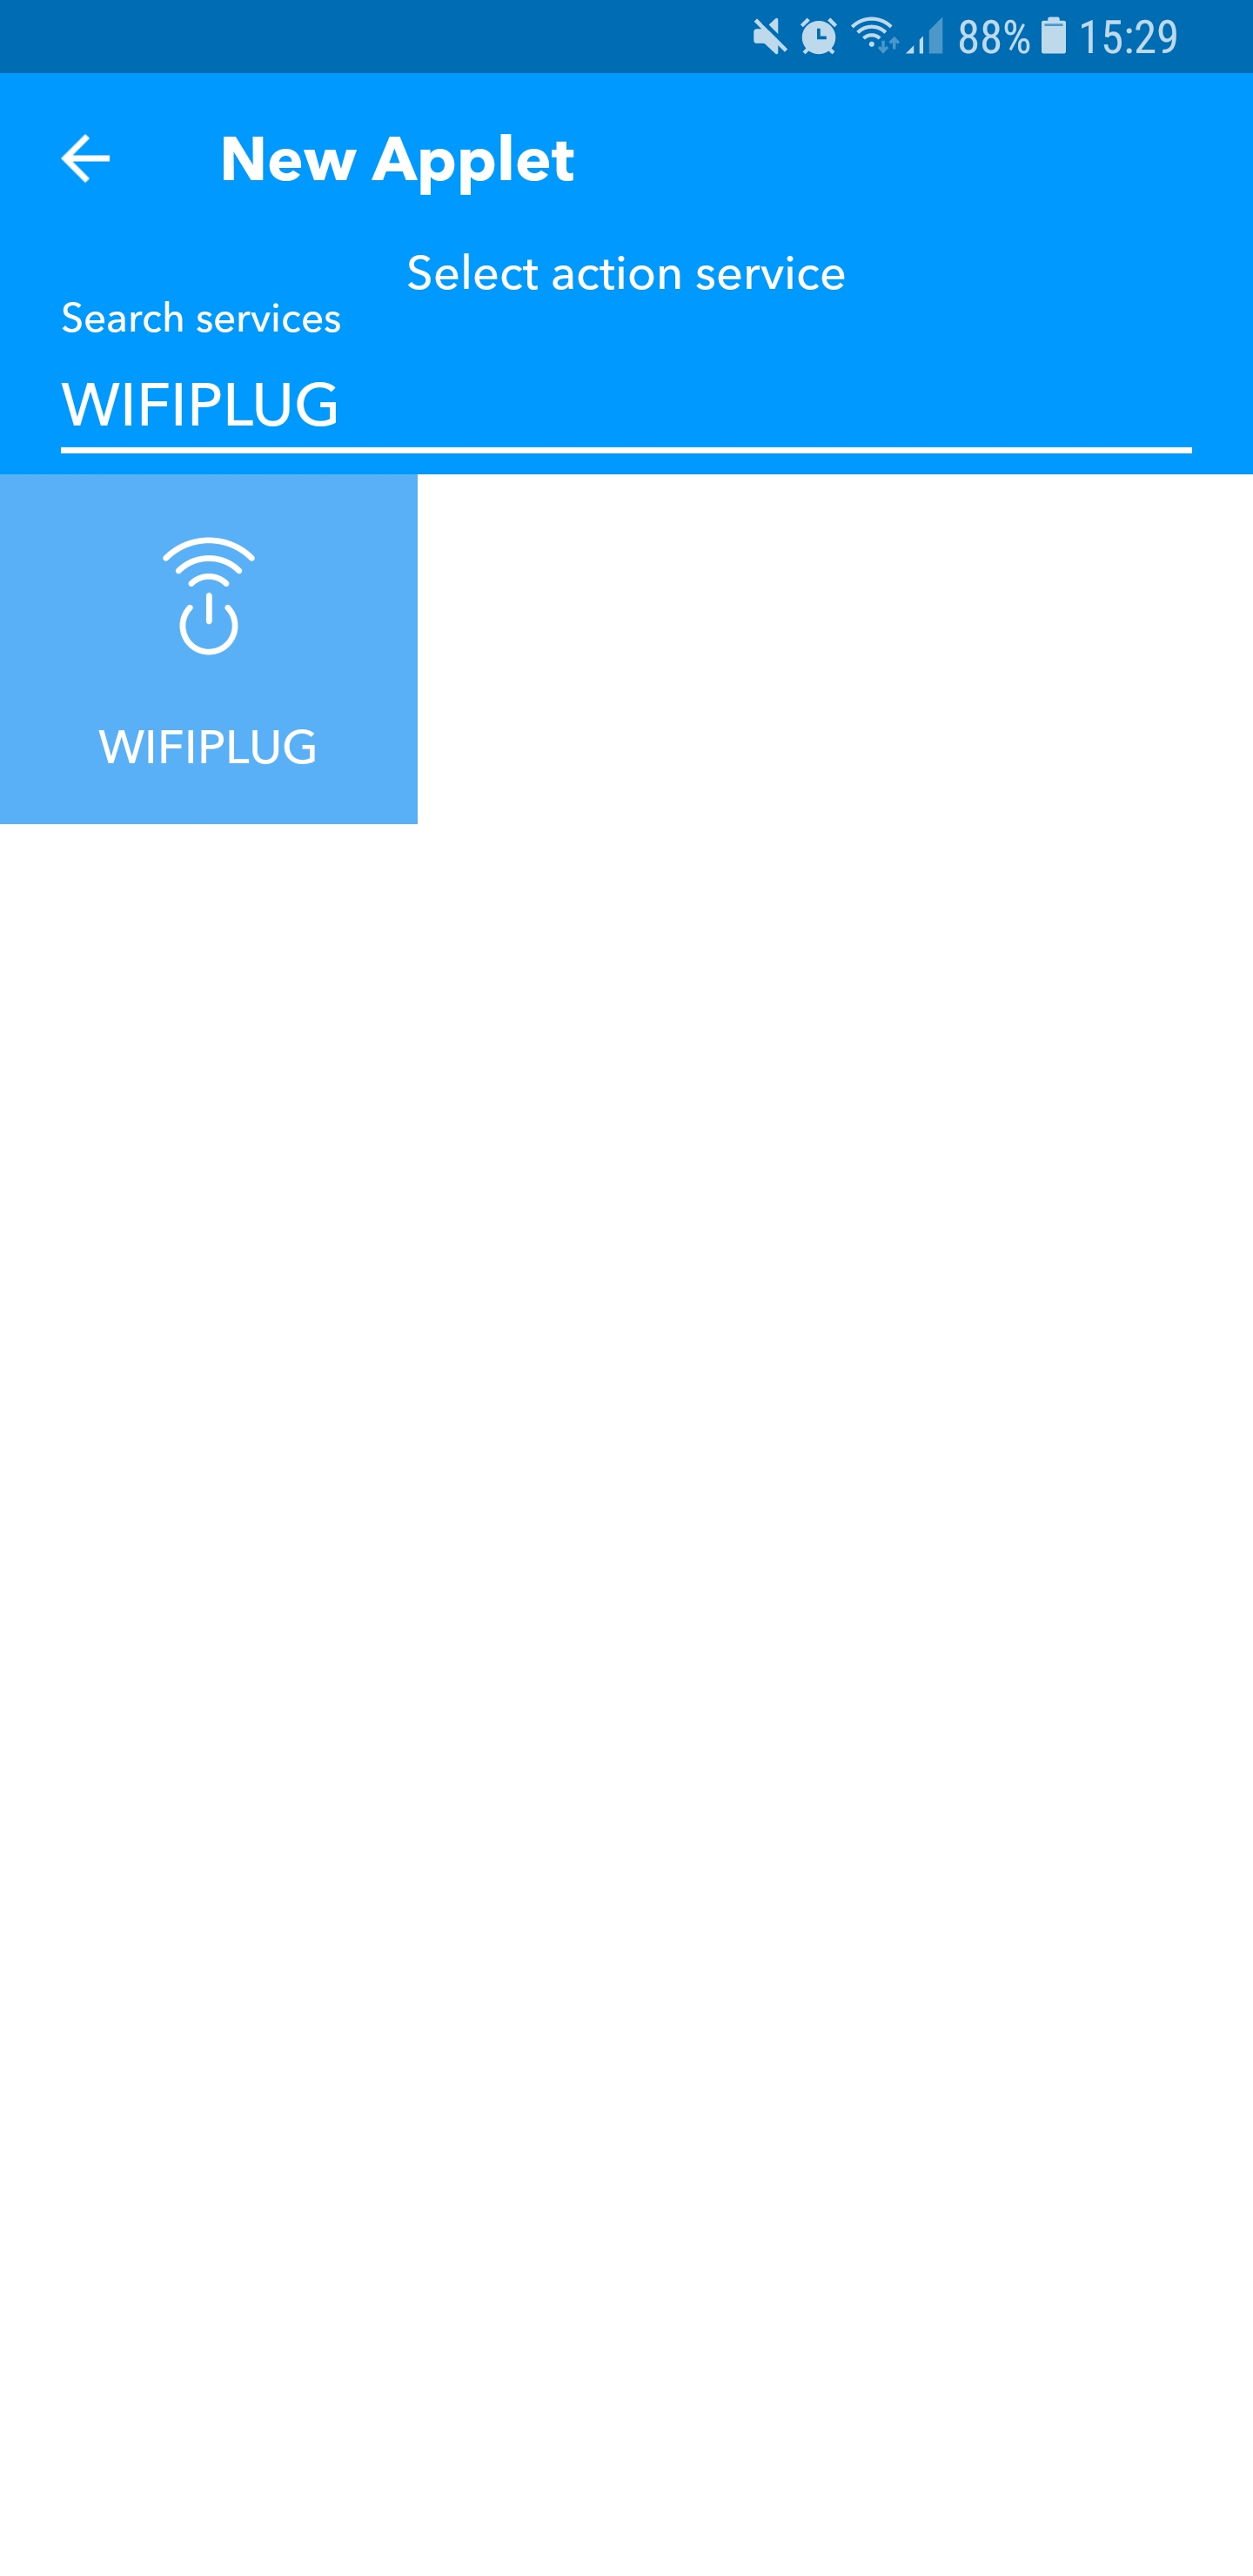 Search_WIFIPLUG.jpg